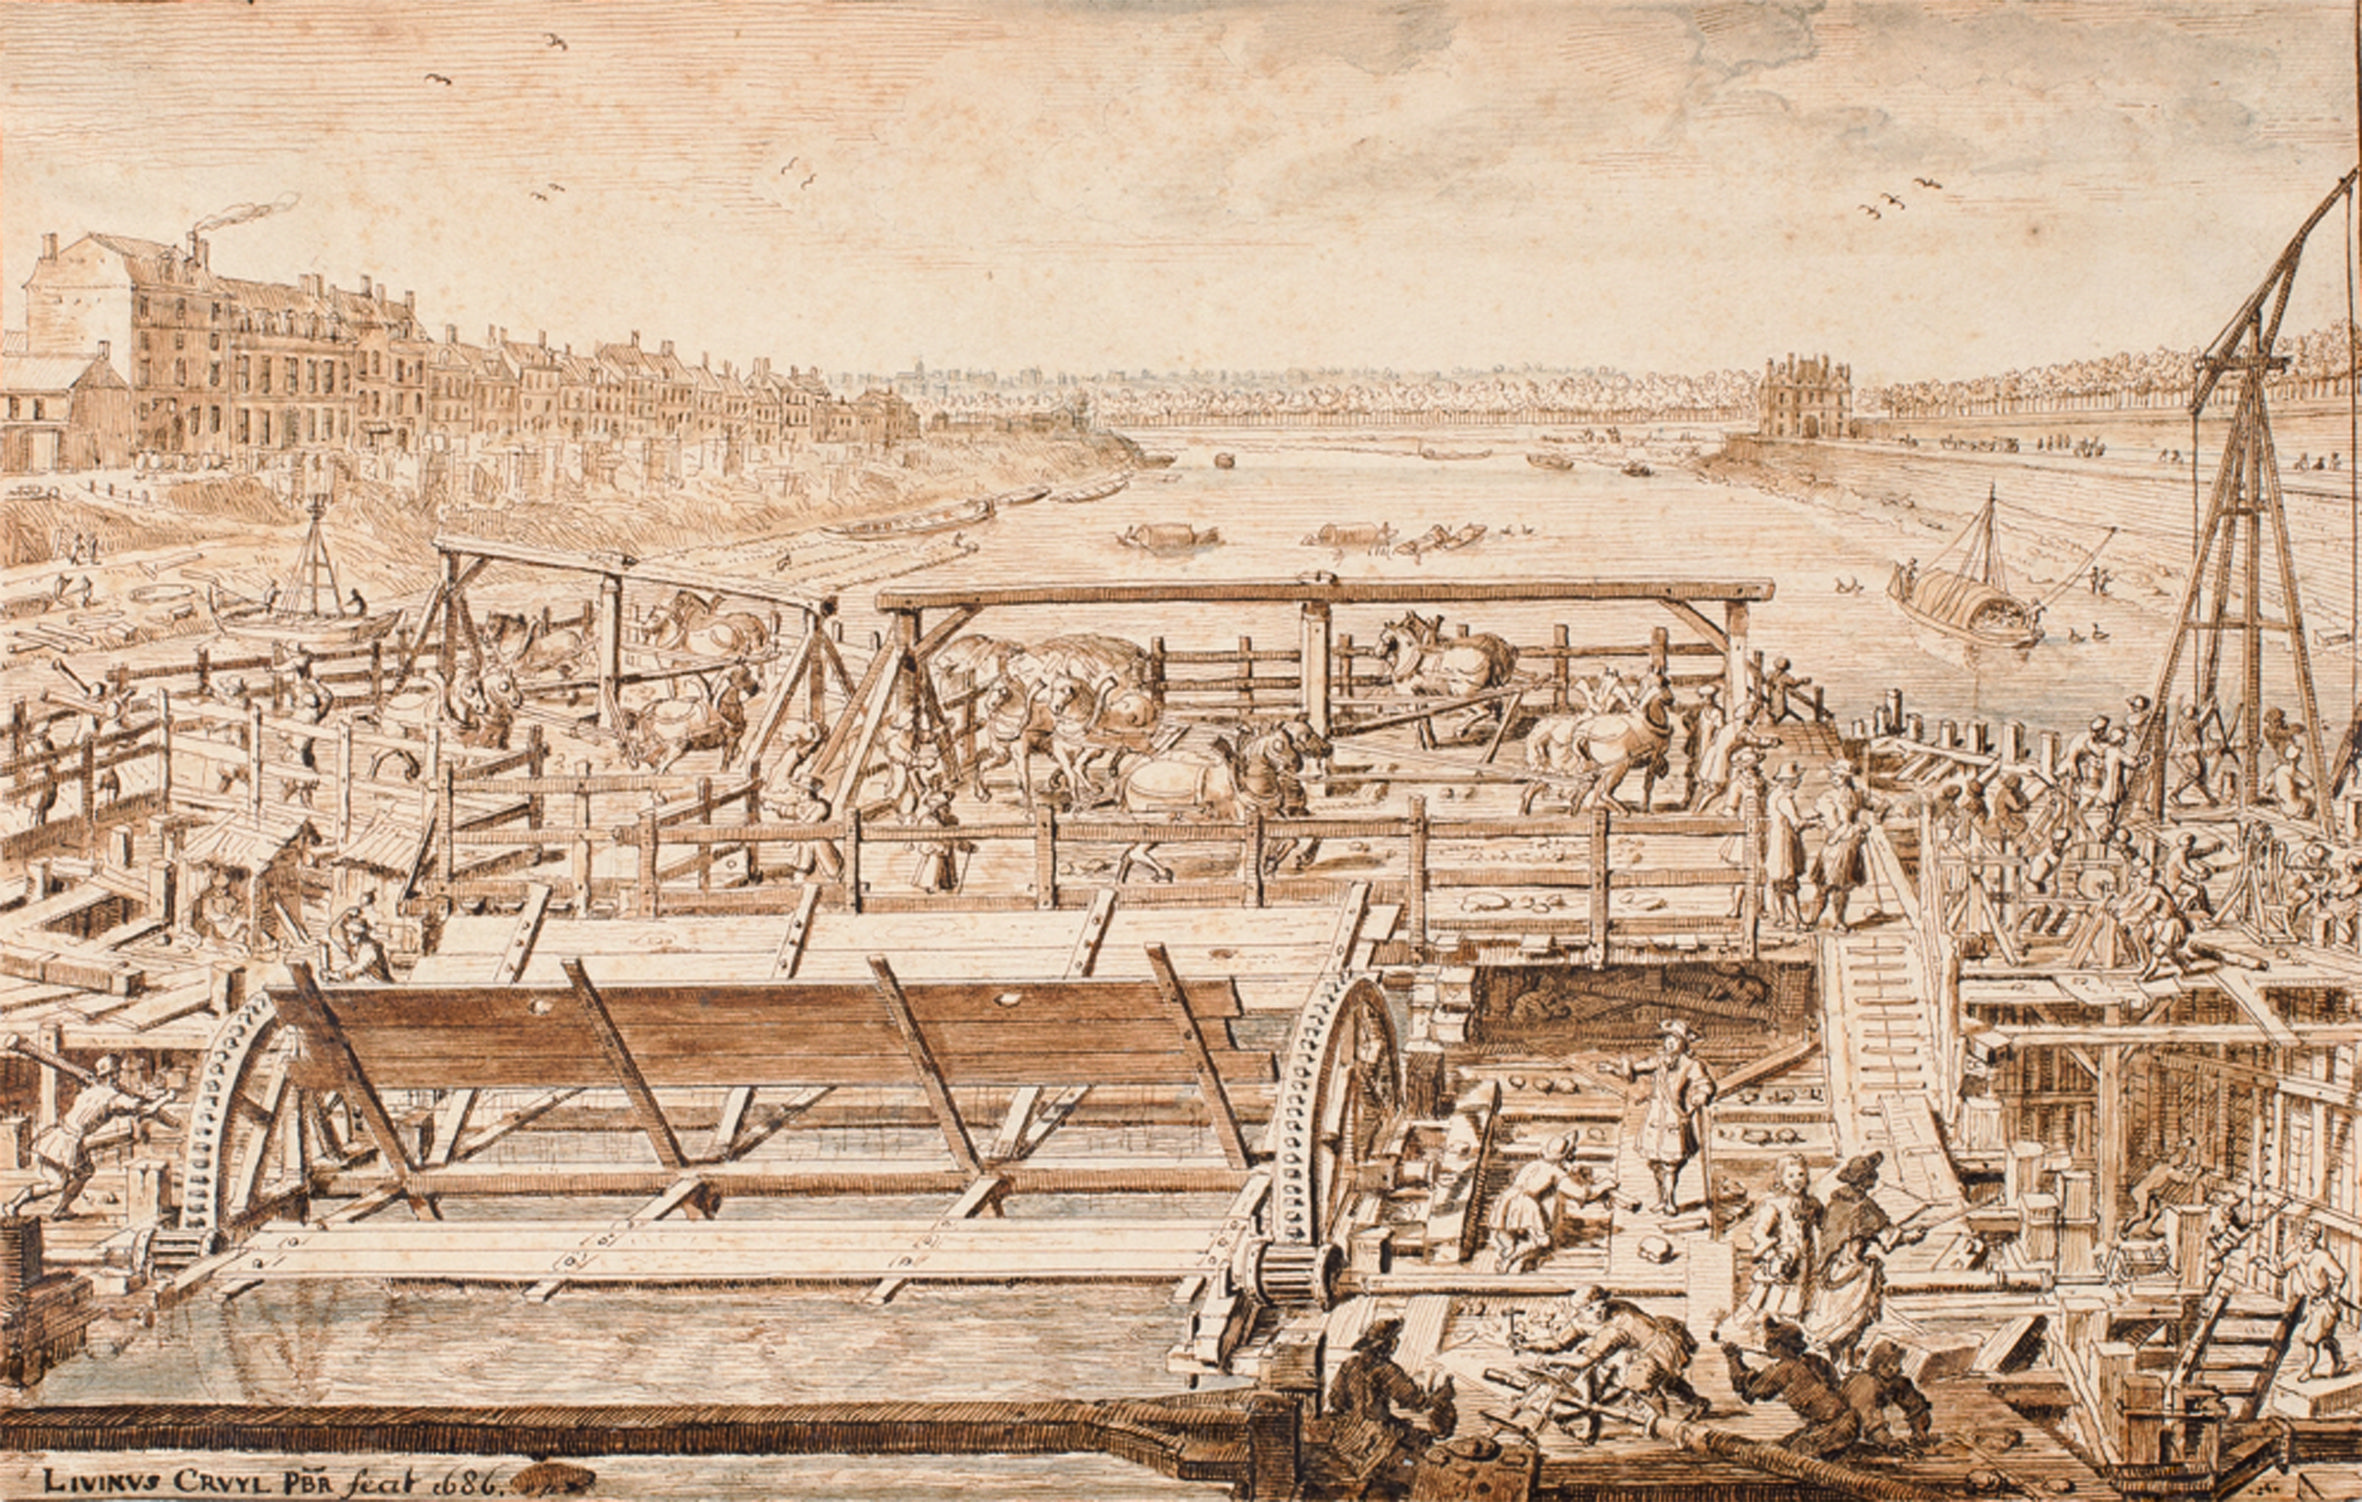 This drawing by Lieven Cruyl (1634 - 1720) depicts the construction of the Pont Royal over the river Seine in Paris in 1686. The figure seen in the near foreground, to the right of centre, is almost certainly the architect Jacques Gabriel. Coll. Stephen Ongpin Fine Art